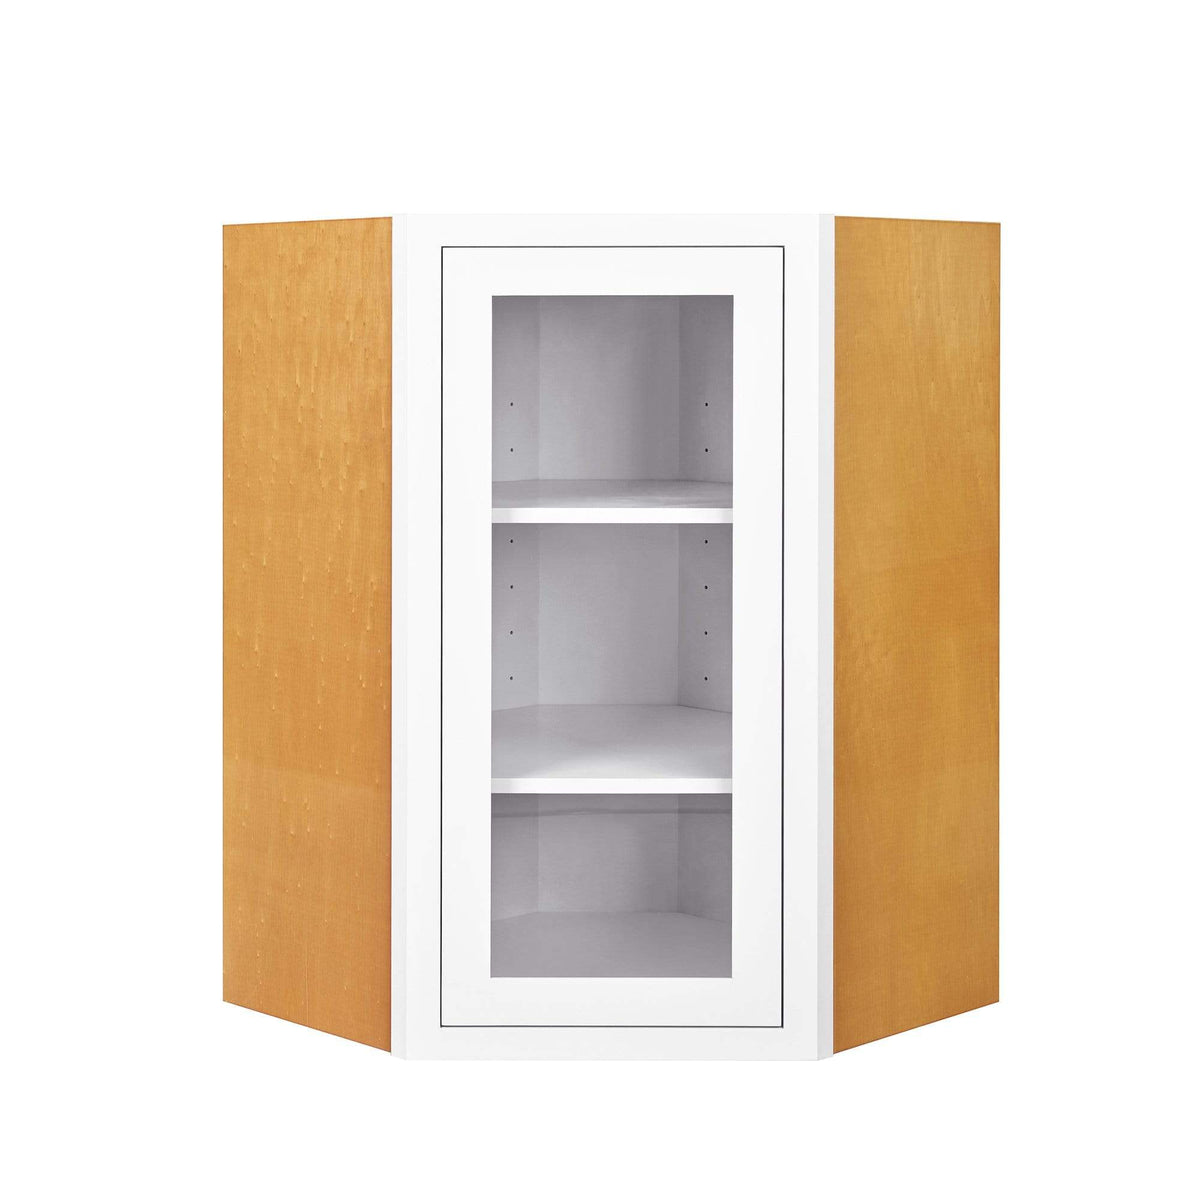 Wall Cabinet Diagonal Corner Snow White Inset Shaker Wall Cabinet - Single Door Glass Inset Kitchen Cabinets